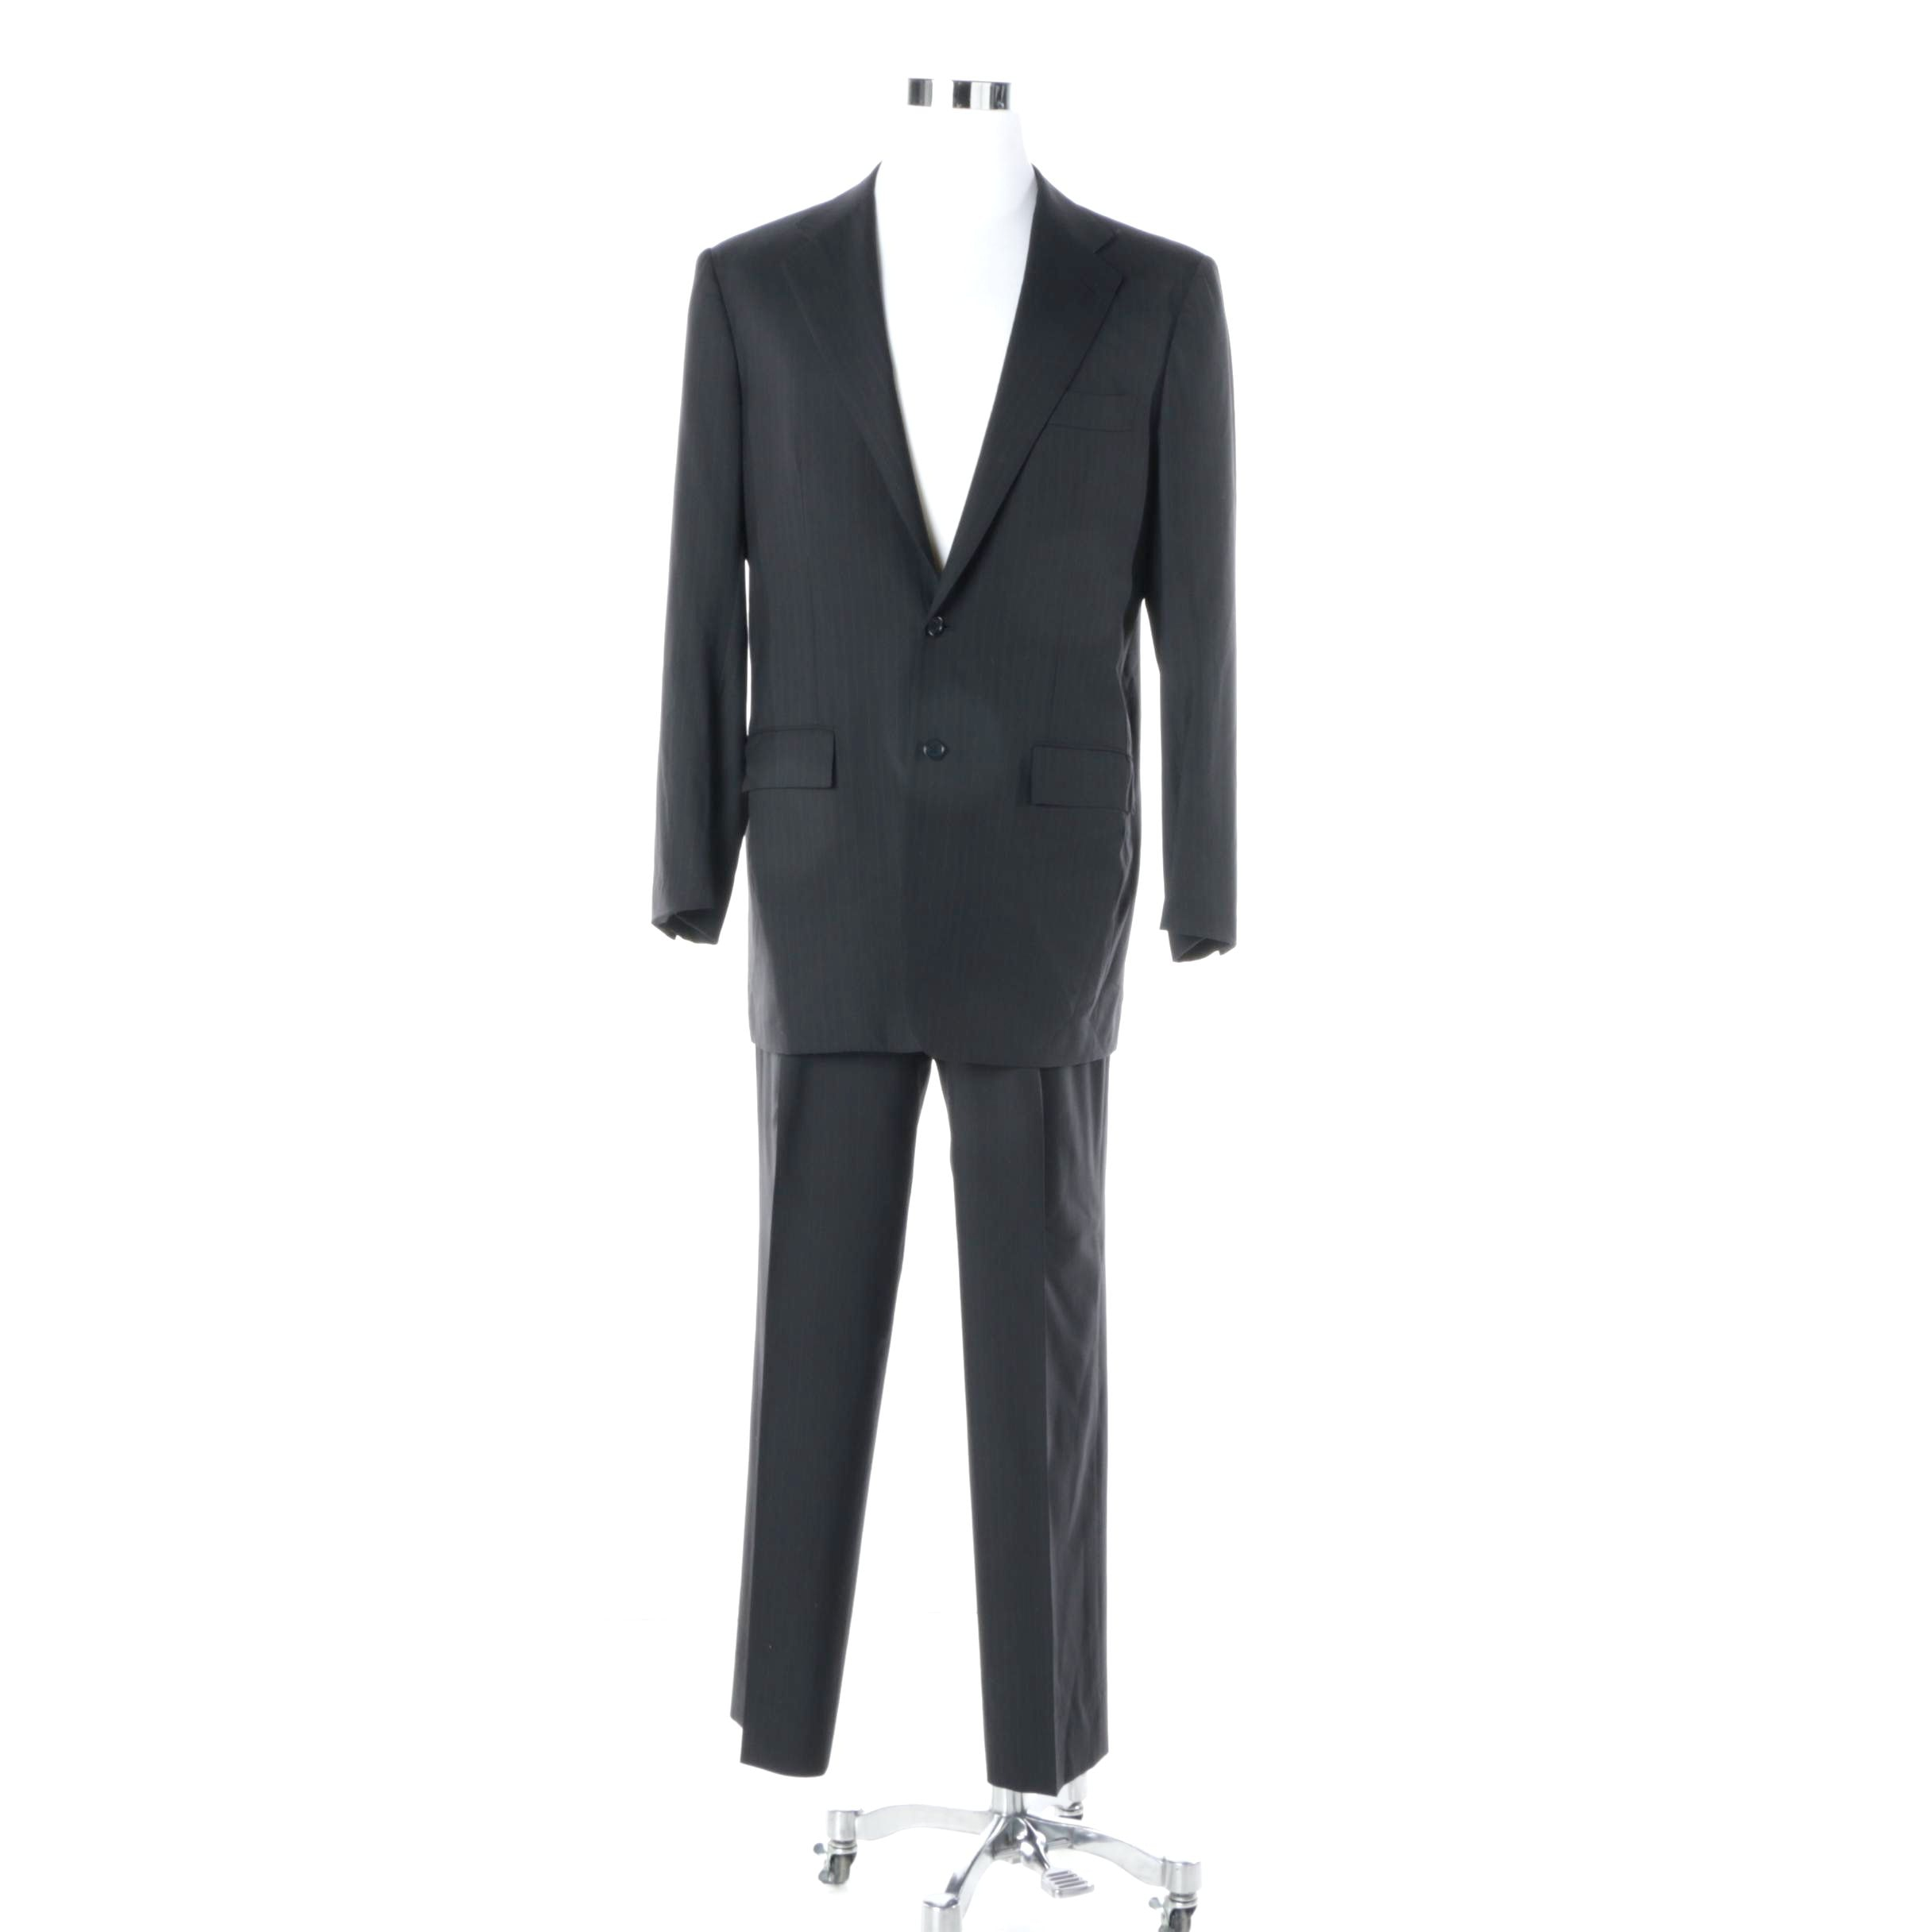 Men's Kiton Single-Breasted Black with Blue Pinstripe Suit